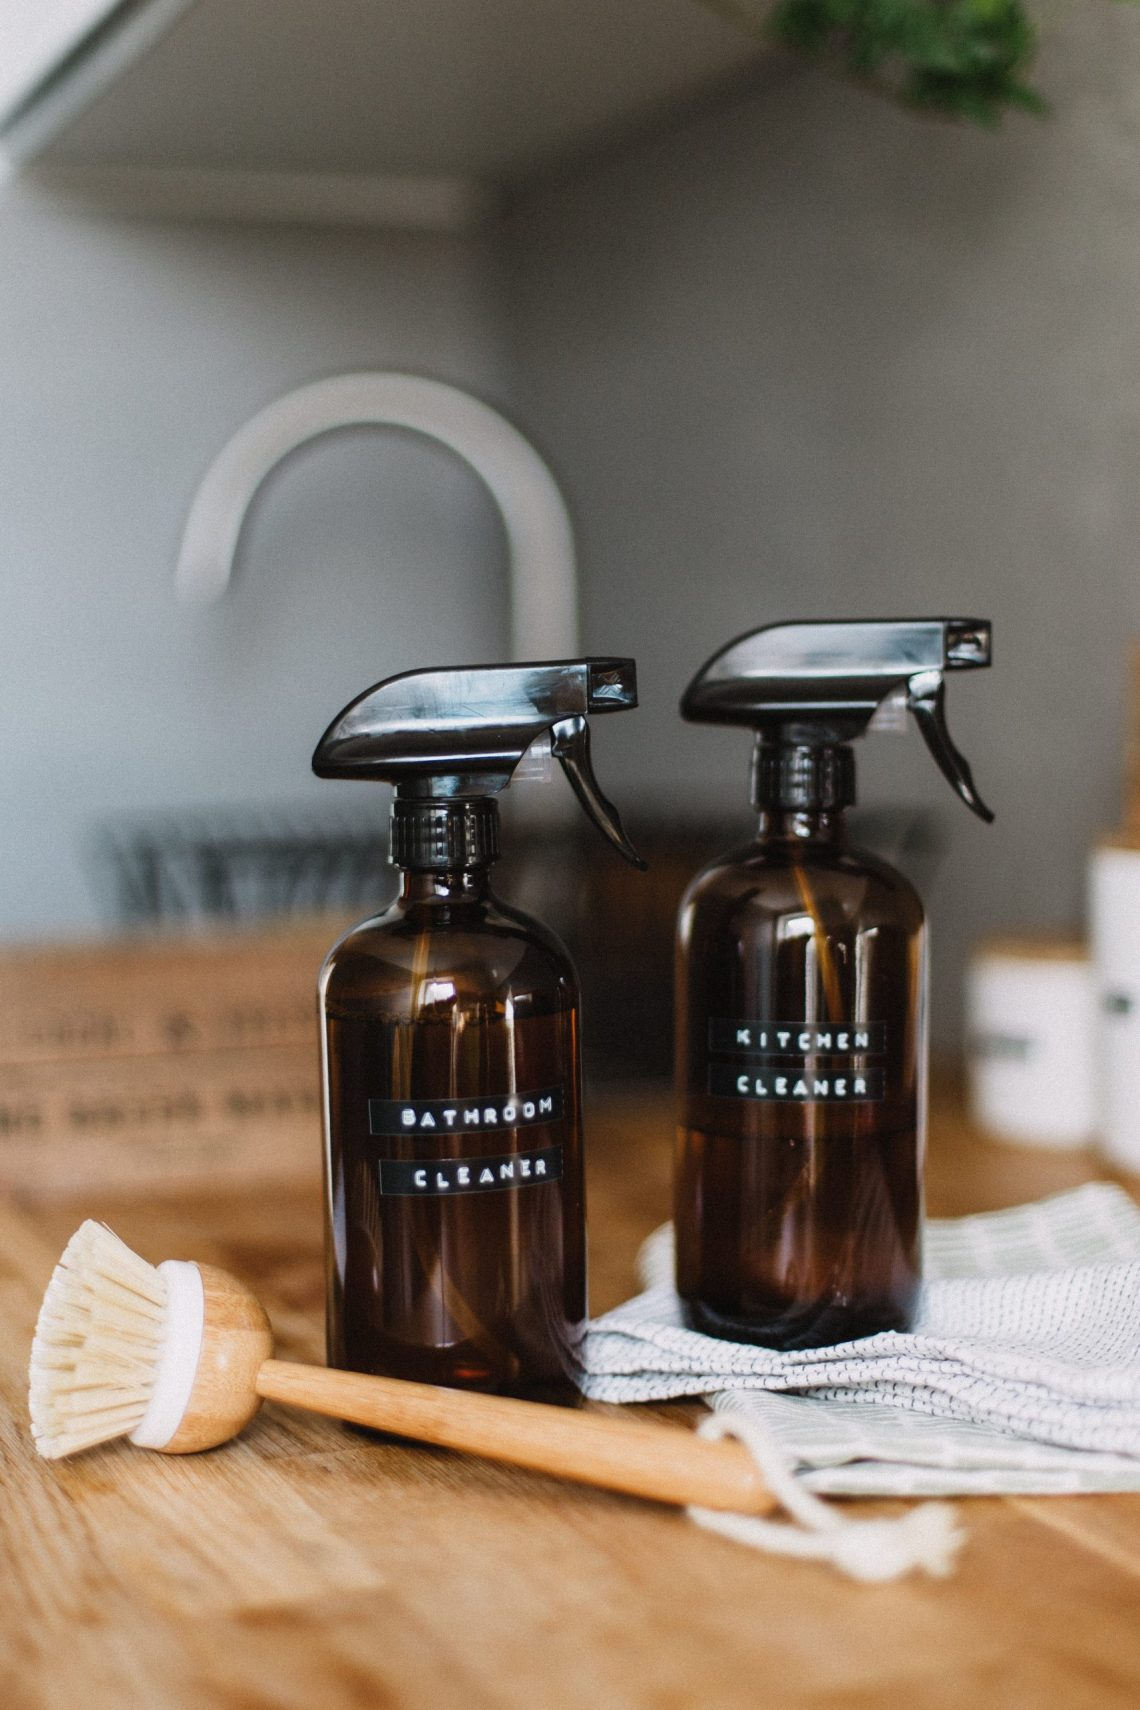 homemade cleaning bottles on counter for a clean home